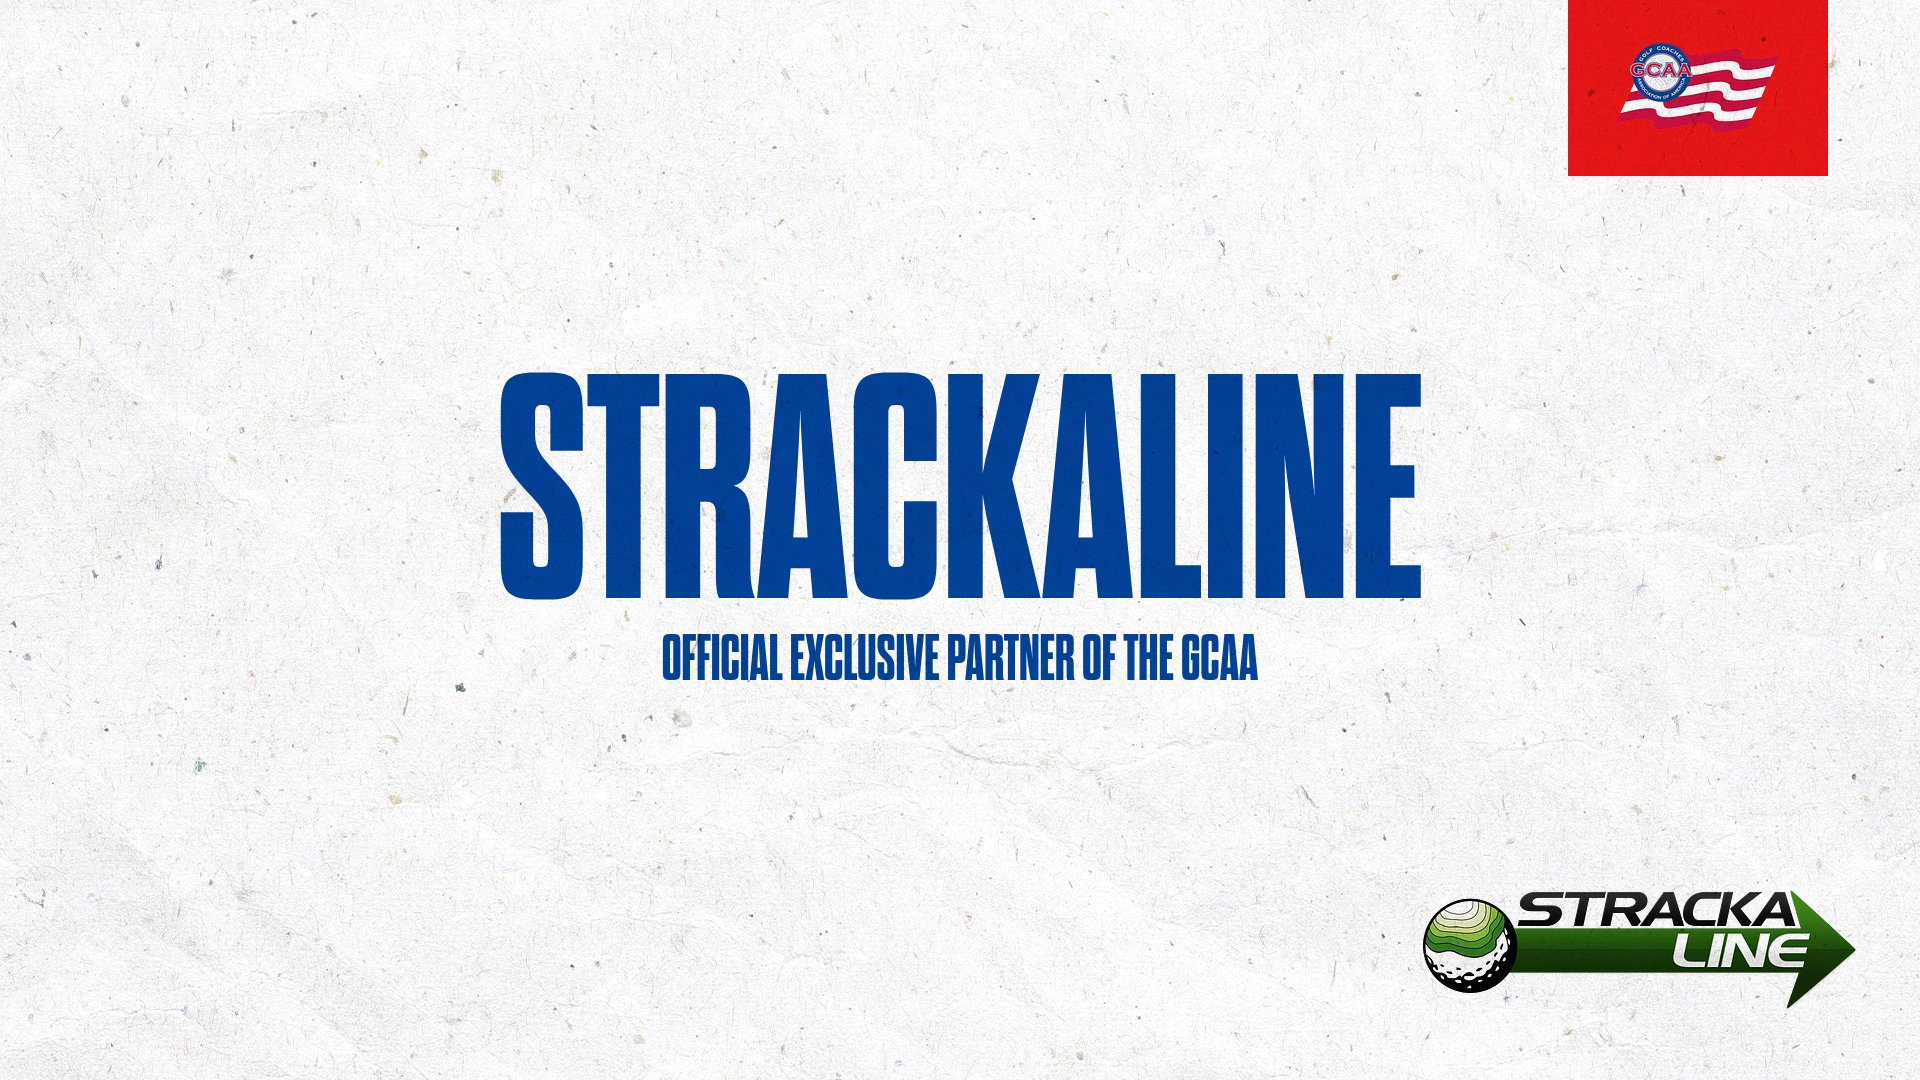 StrackaLine Named Exclusive Partner Of Golf Coaches Association Of America, Women's Golf Coaches Association